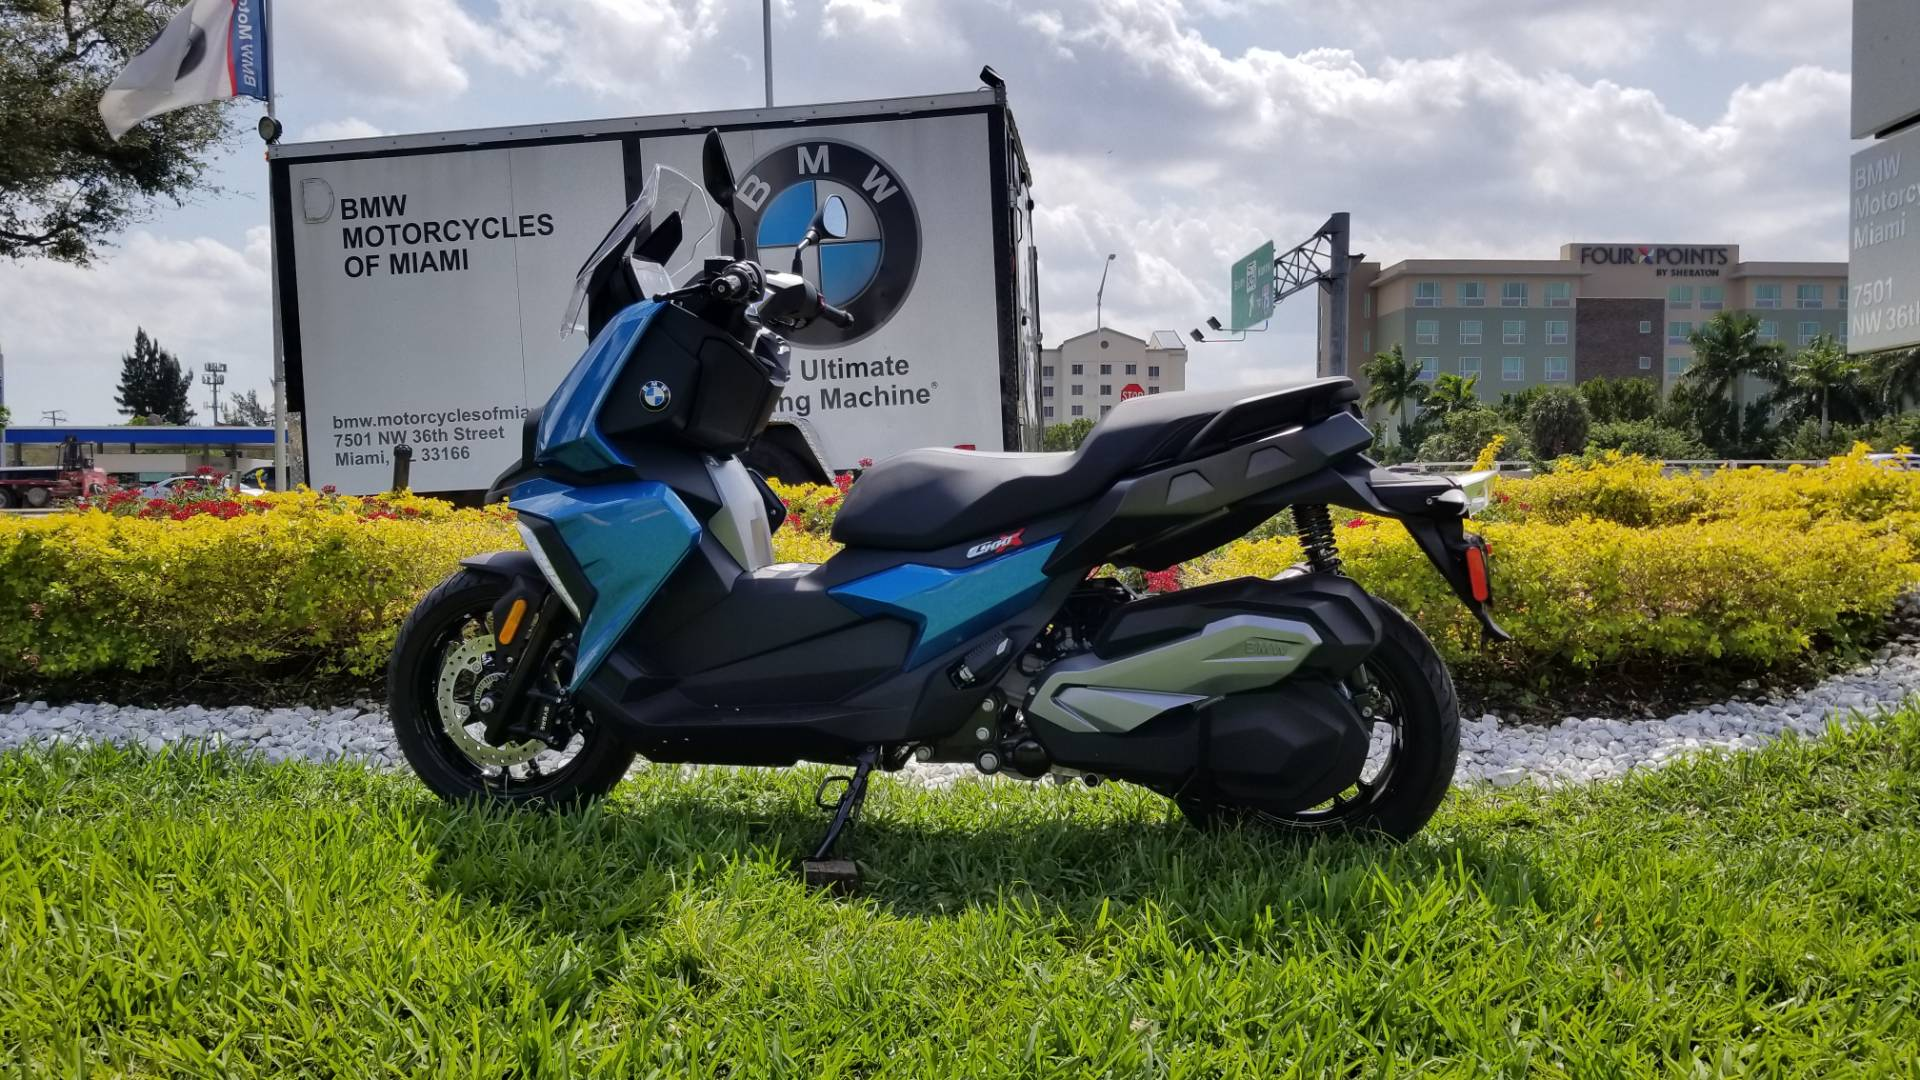 New 2019 BMW C 400 X for sale, BMW C 400X for sale, BMW Scooter, new BMW Scooter, C400X, BMW Motorcycles of Miami, Motorcycles of Miami, Motorcycles Miami - Photo 2